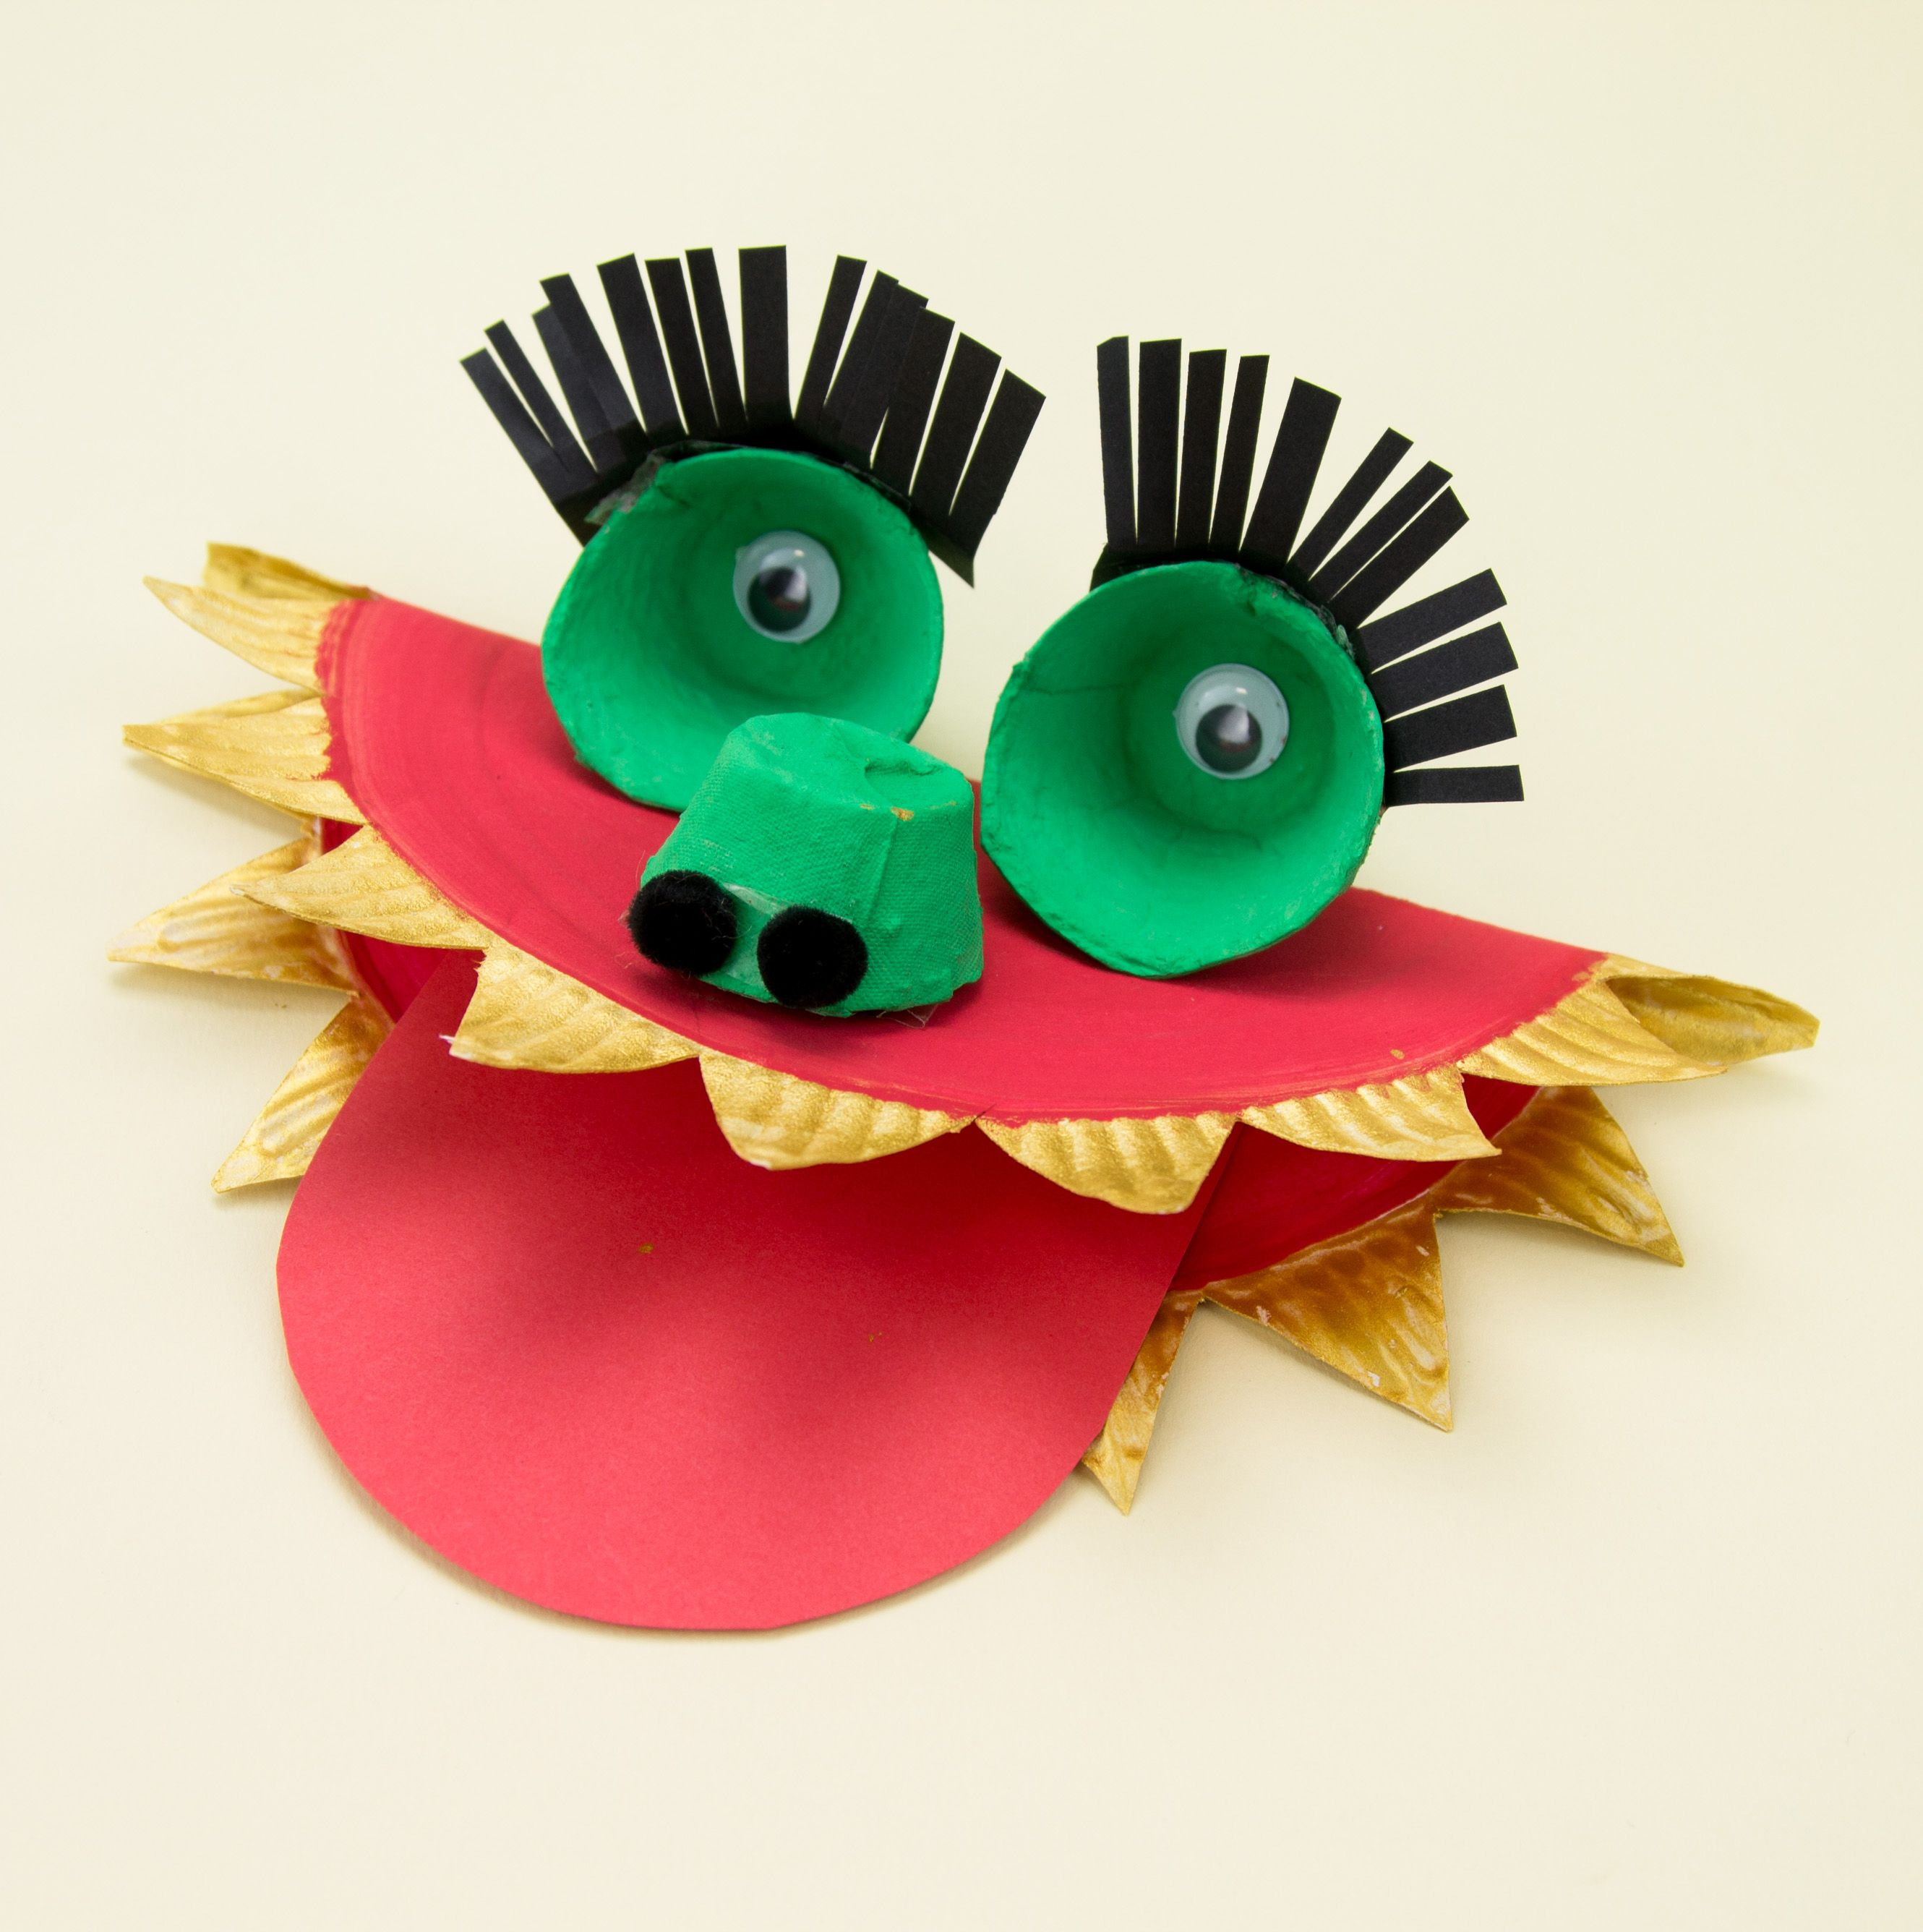 Paper Plate Dragon Craft Instructions